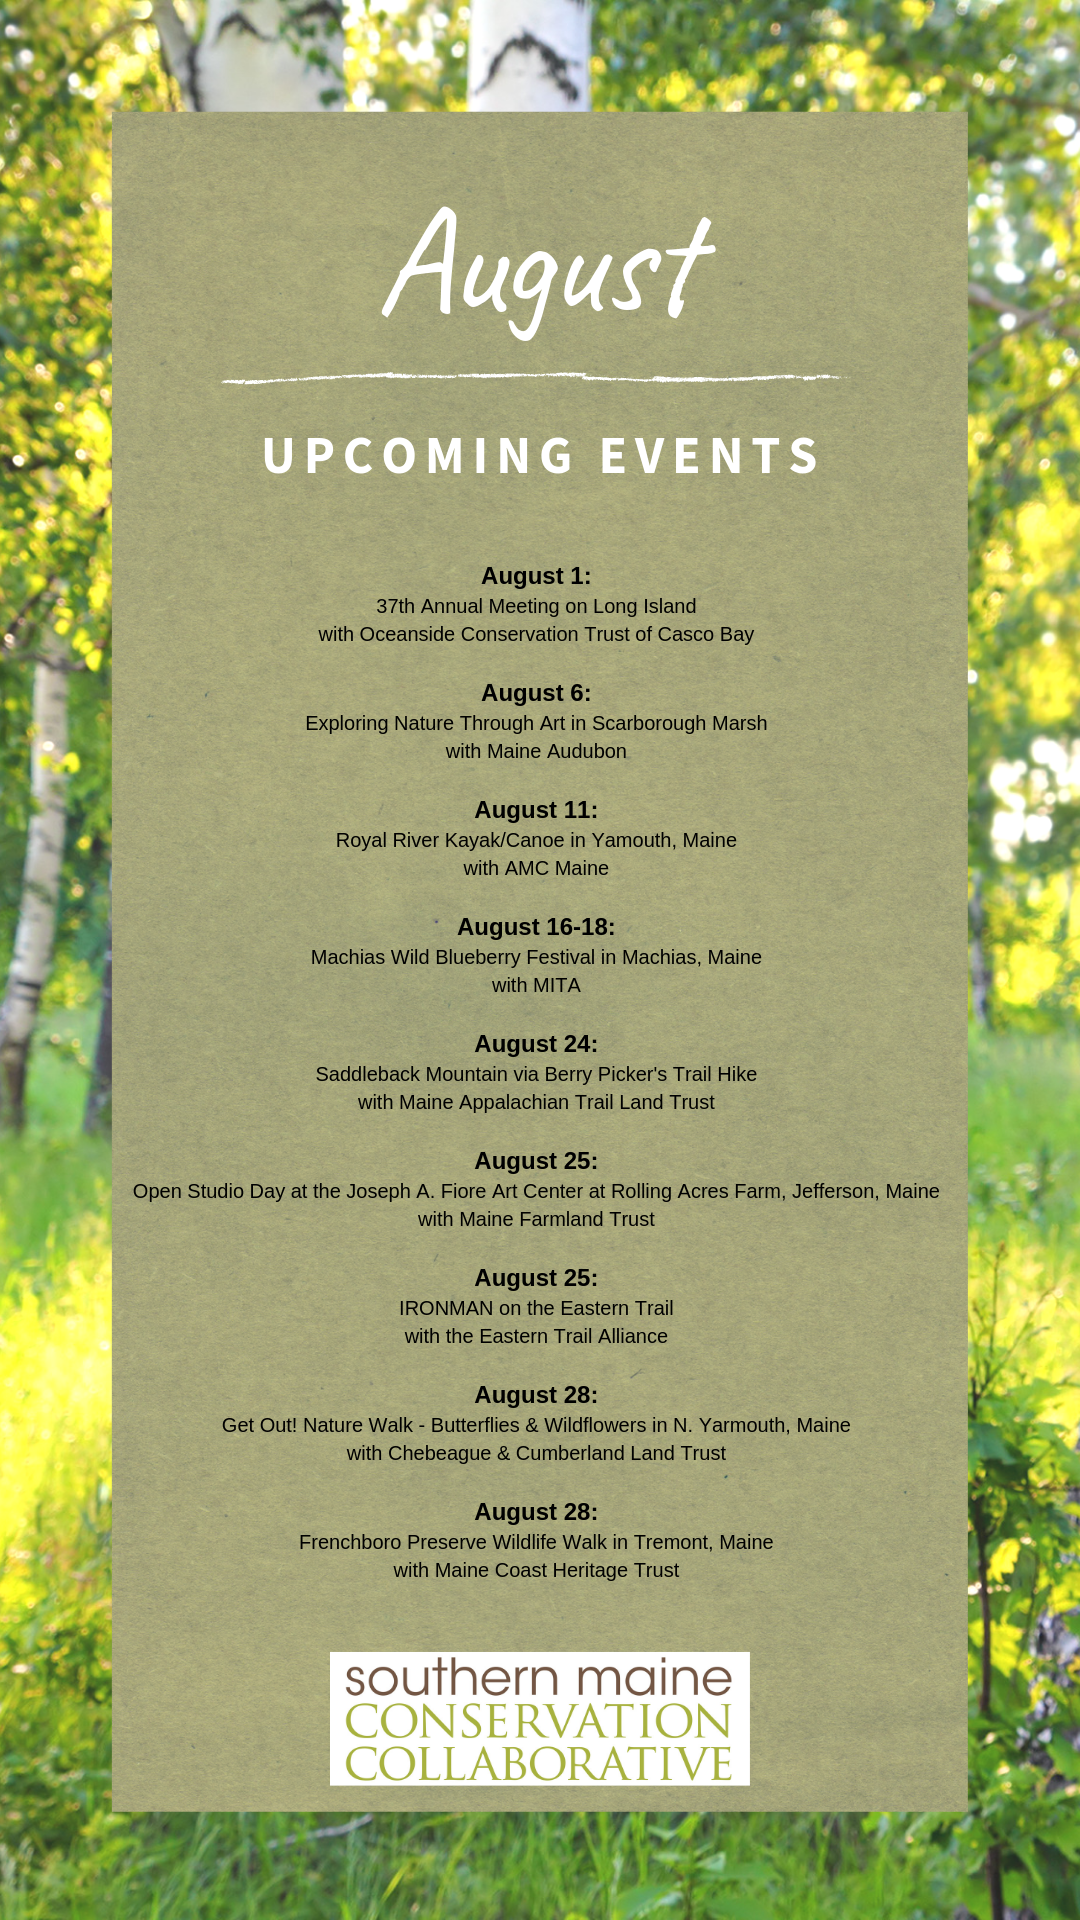 SMCC's Member Organizations Events – Southern Maine Conservation